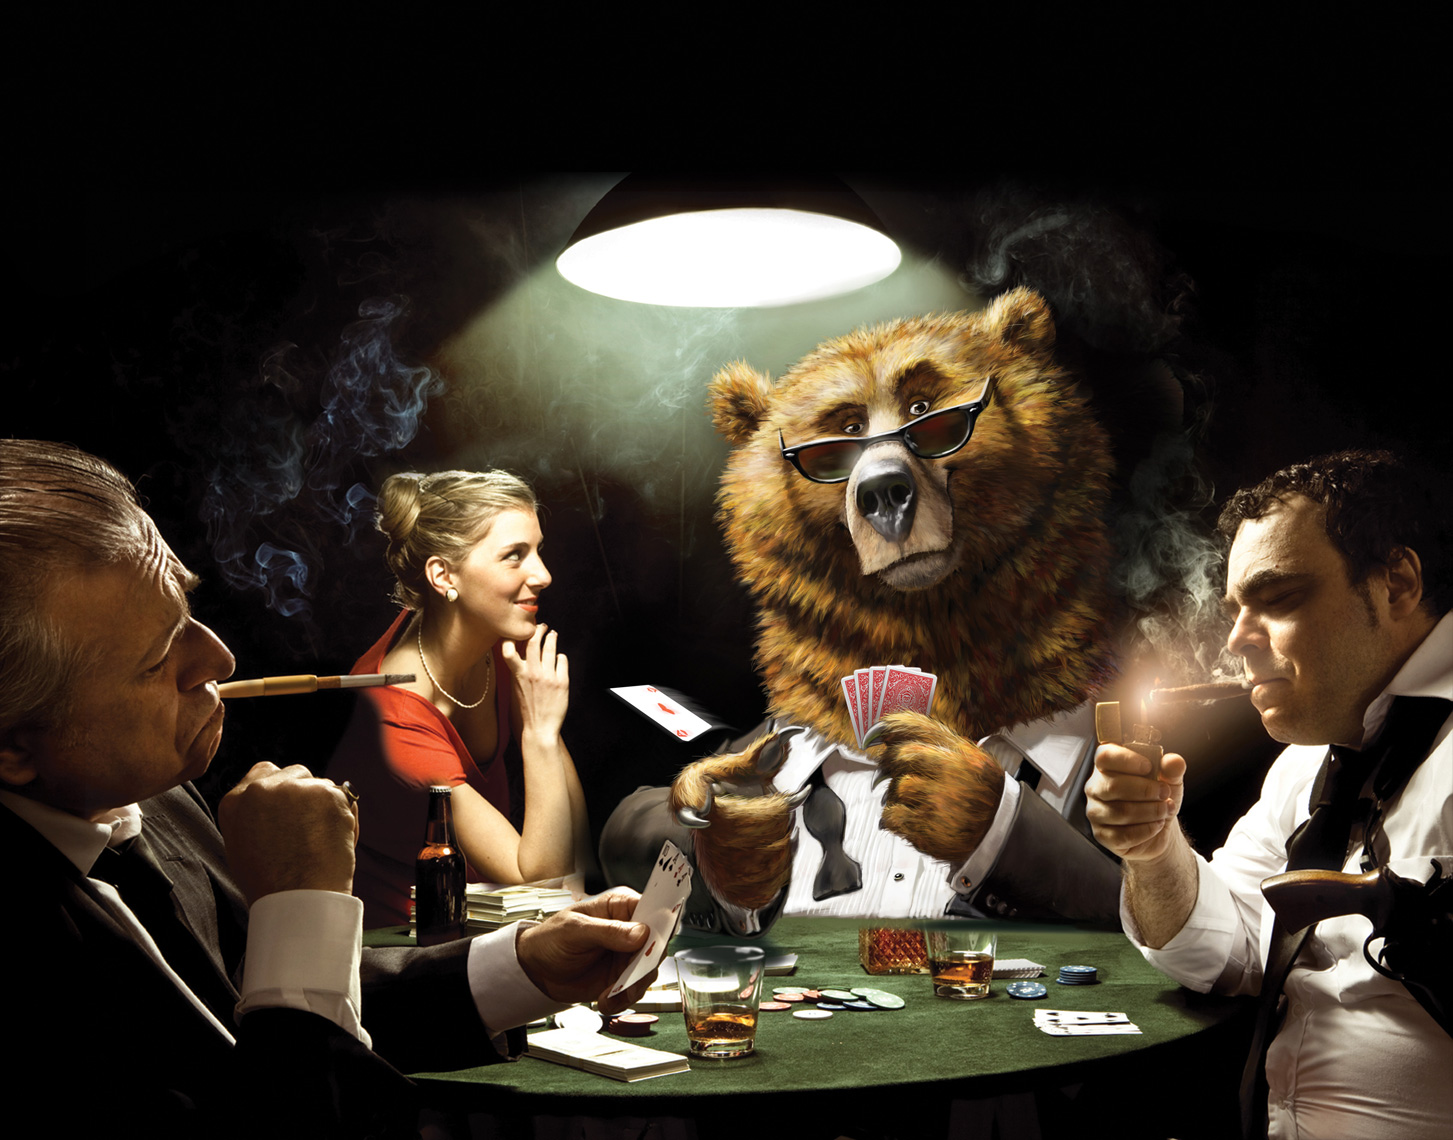 mcwilliam_advertising_poker-bear.jpg